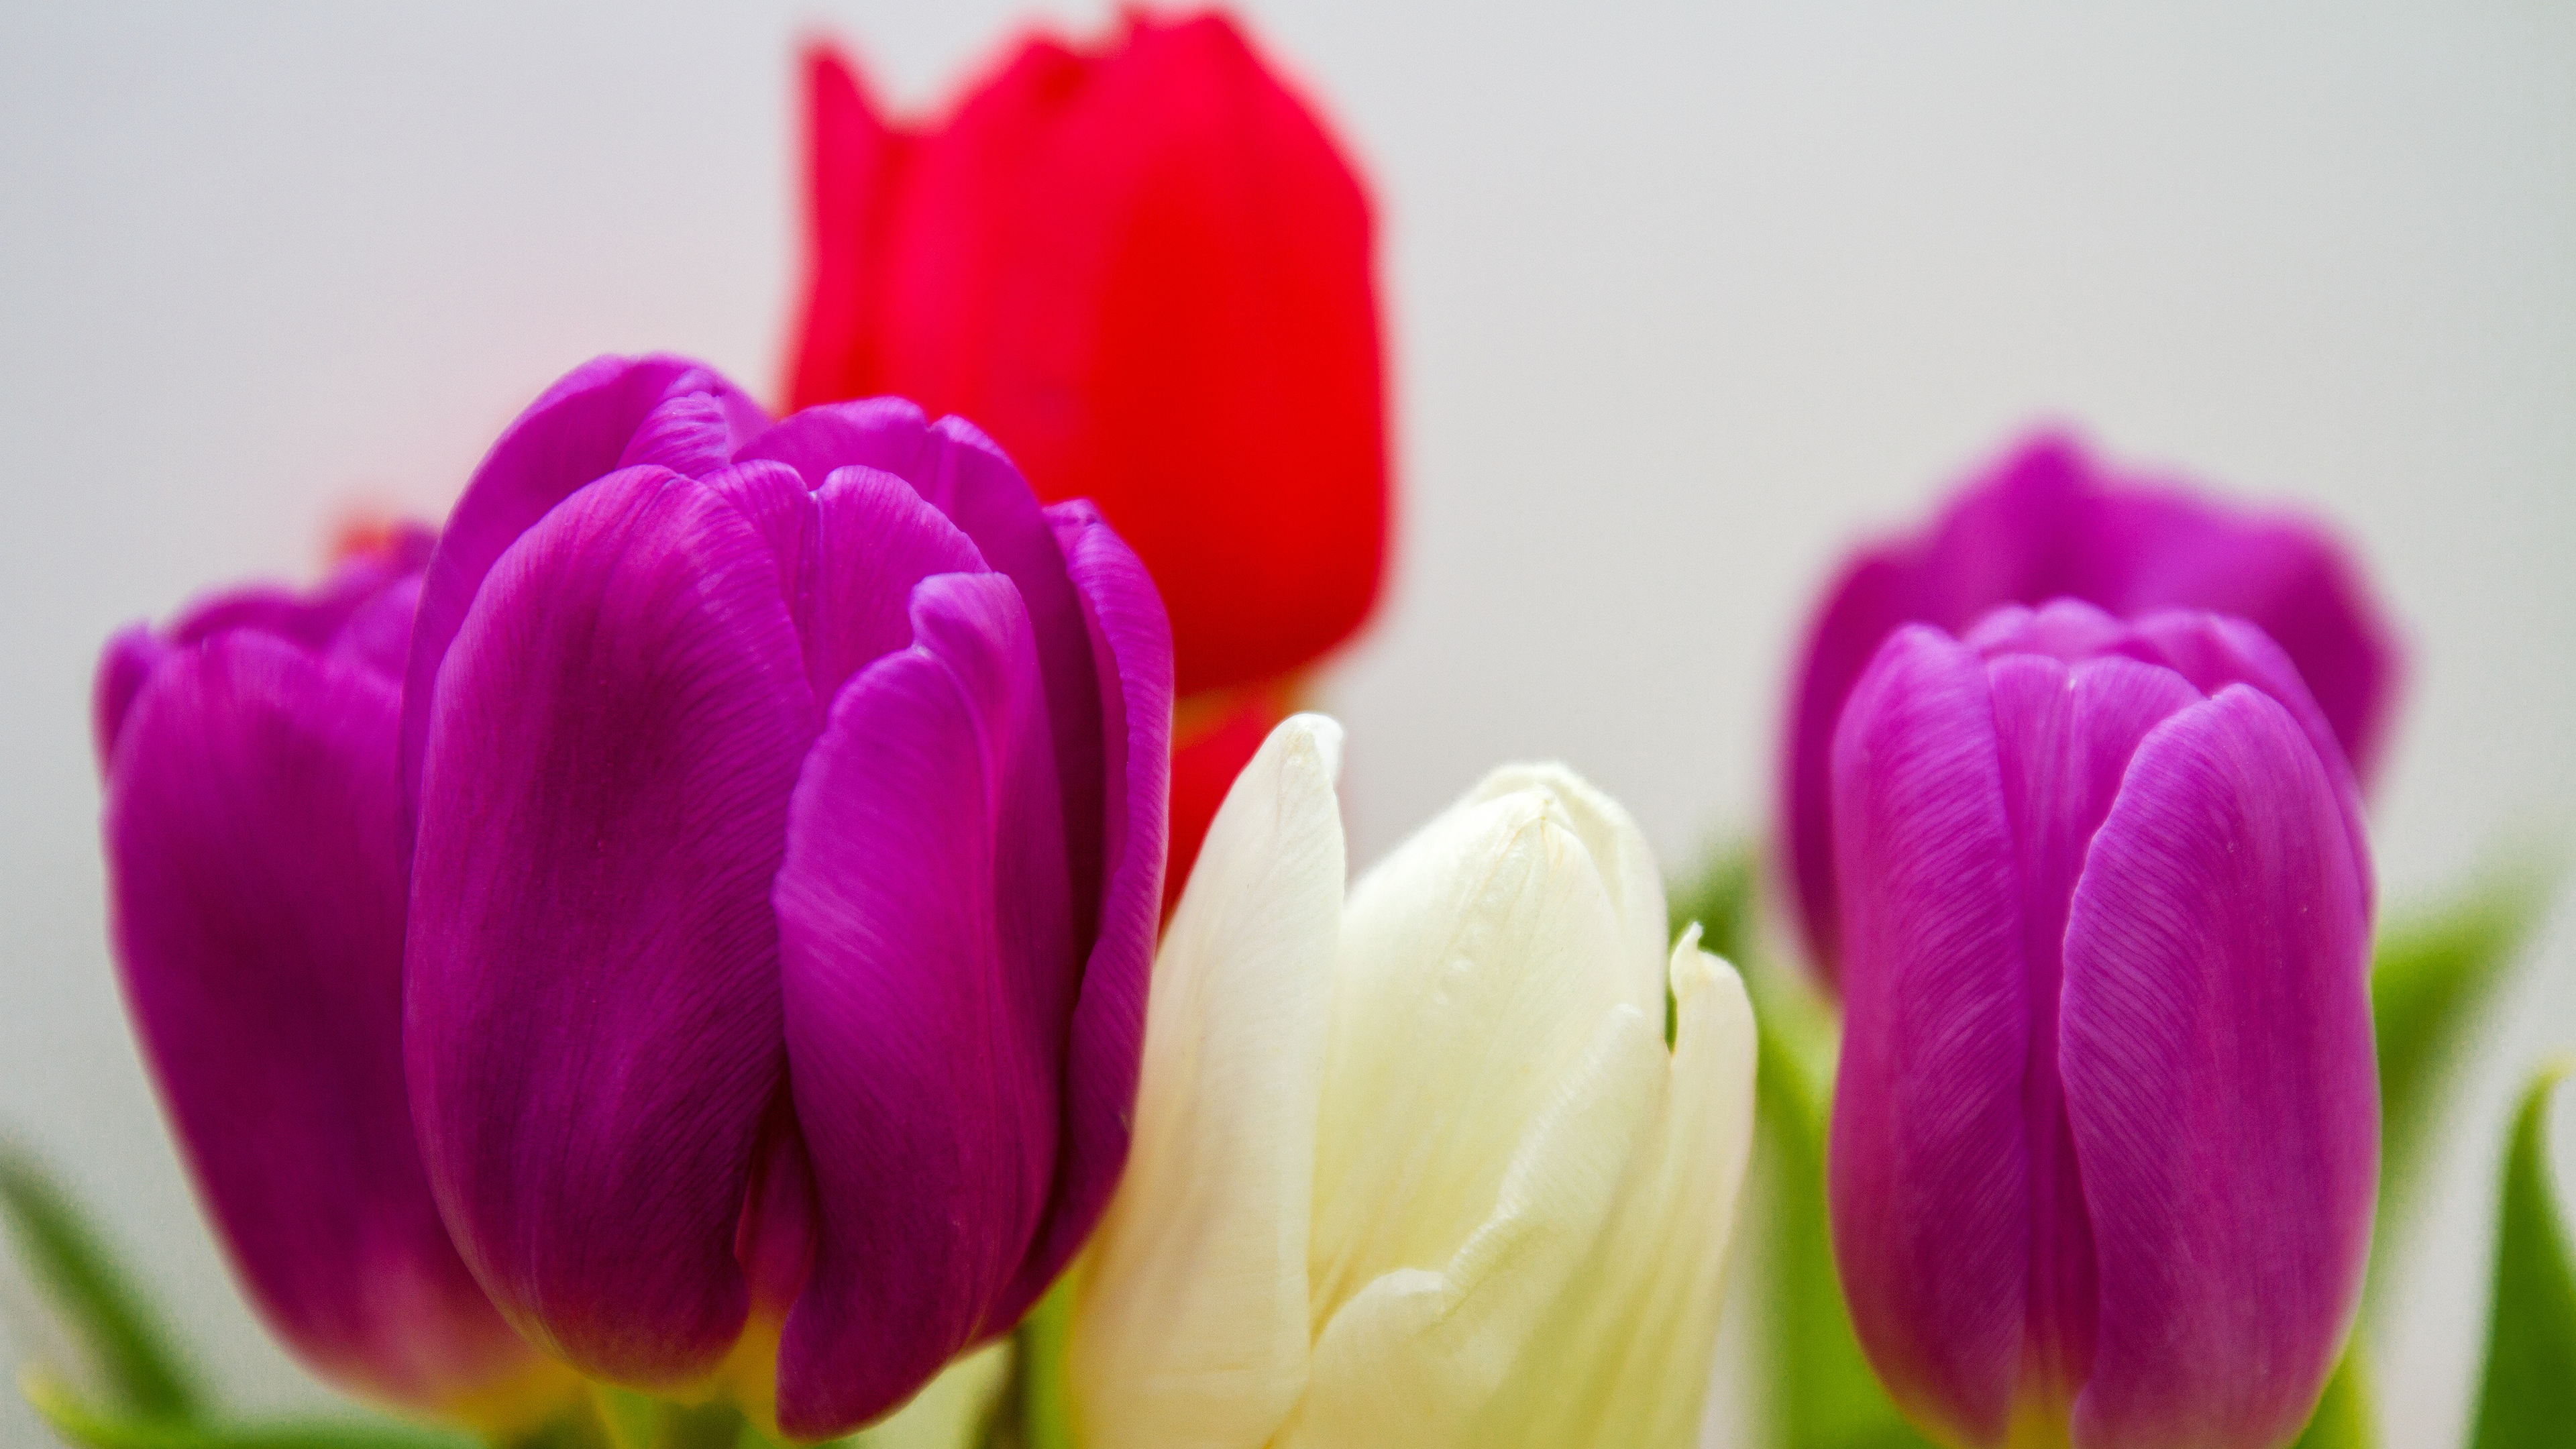 download colorful tulip flowers laptop wallpaper in uhd 4k 0102